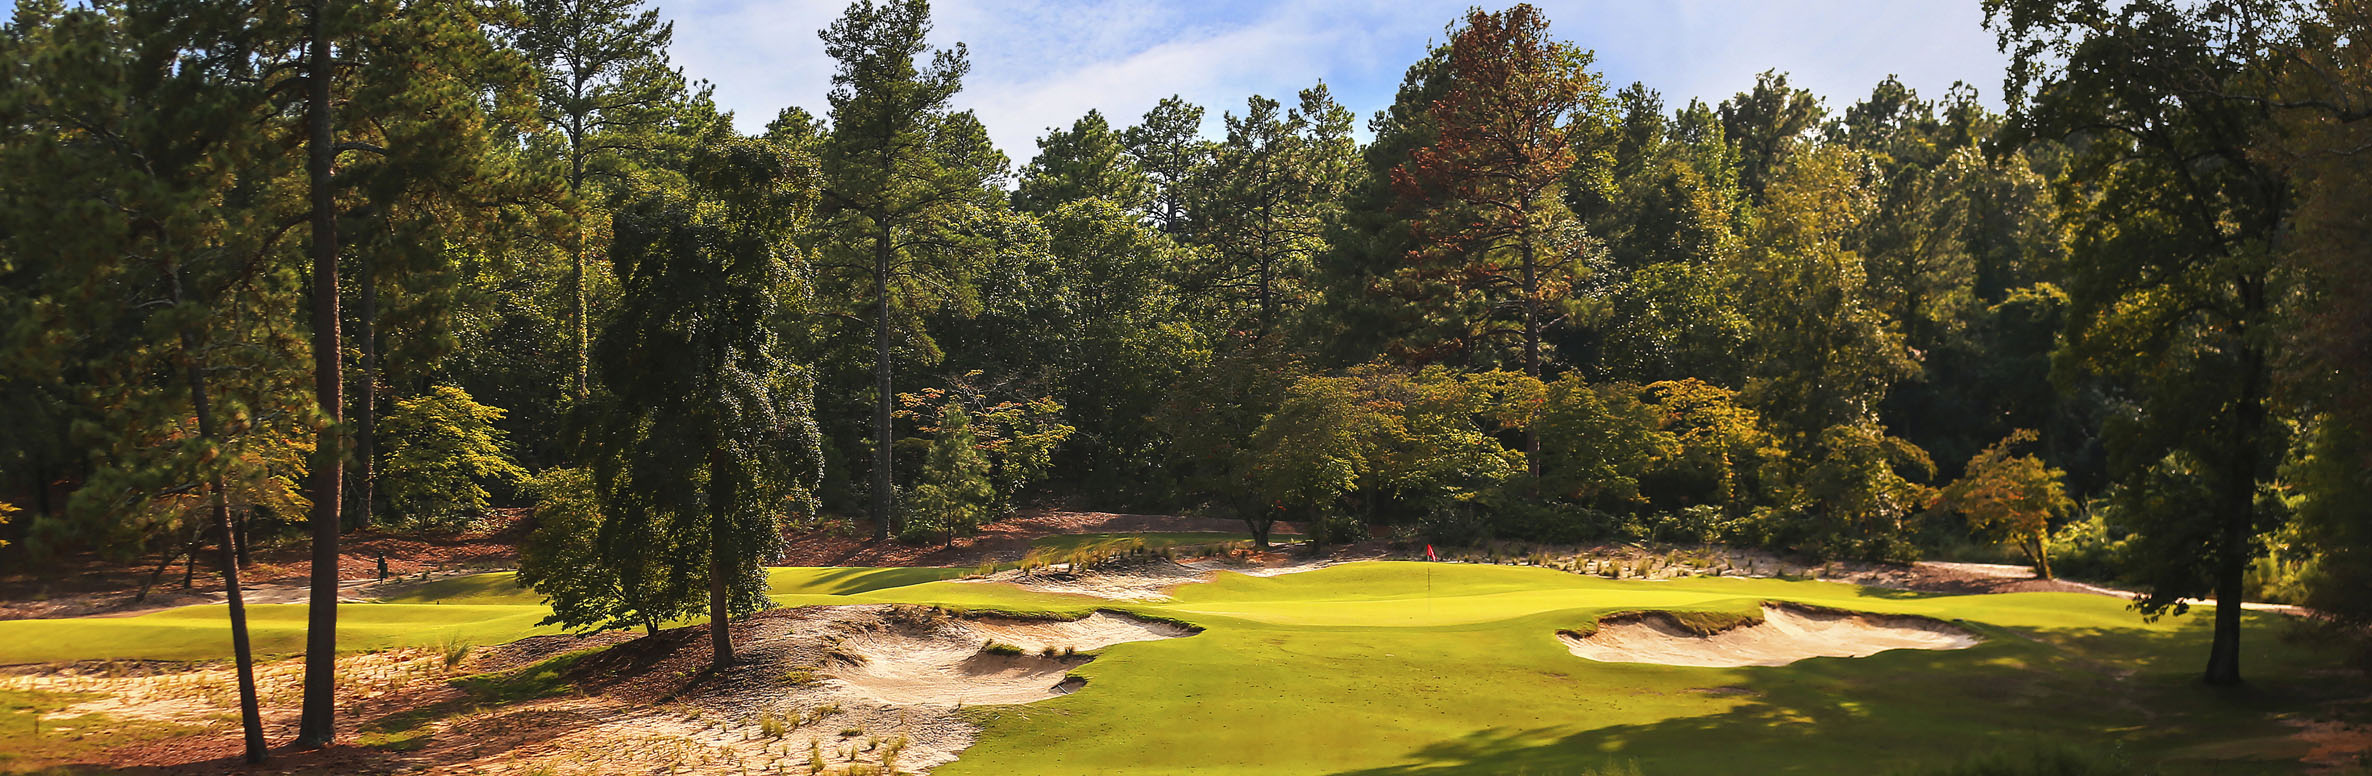 Golf Course Image - Mid Pines Inn and Country Club No. 2